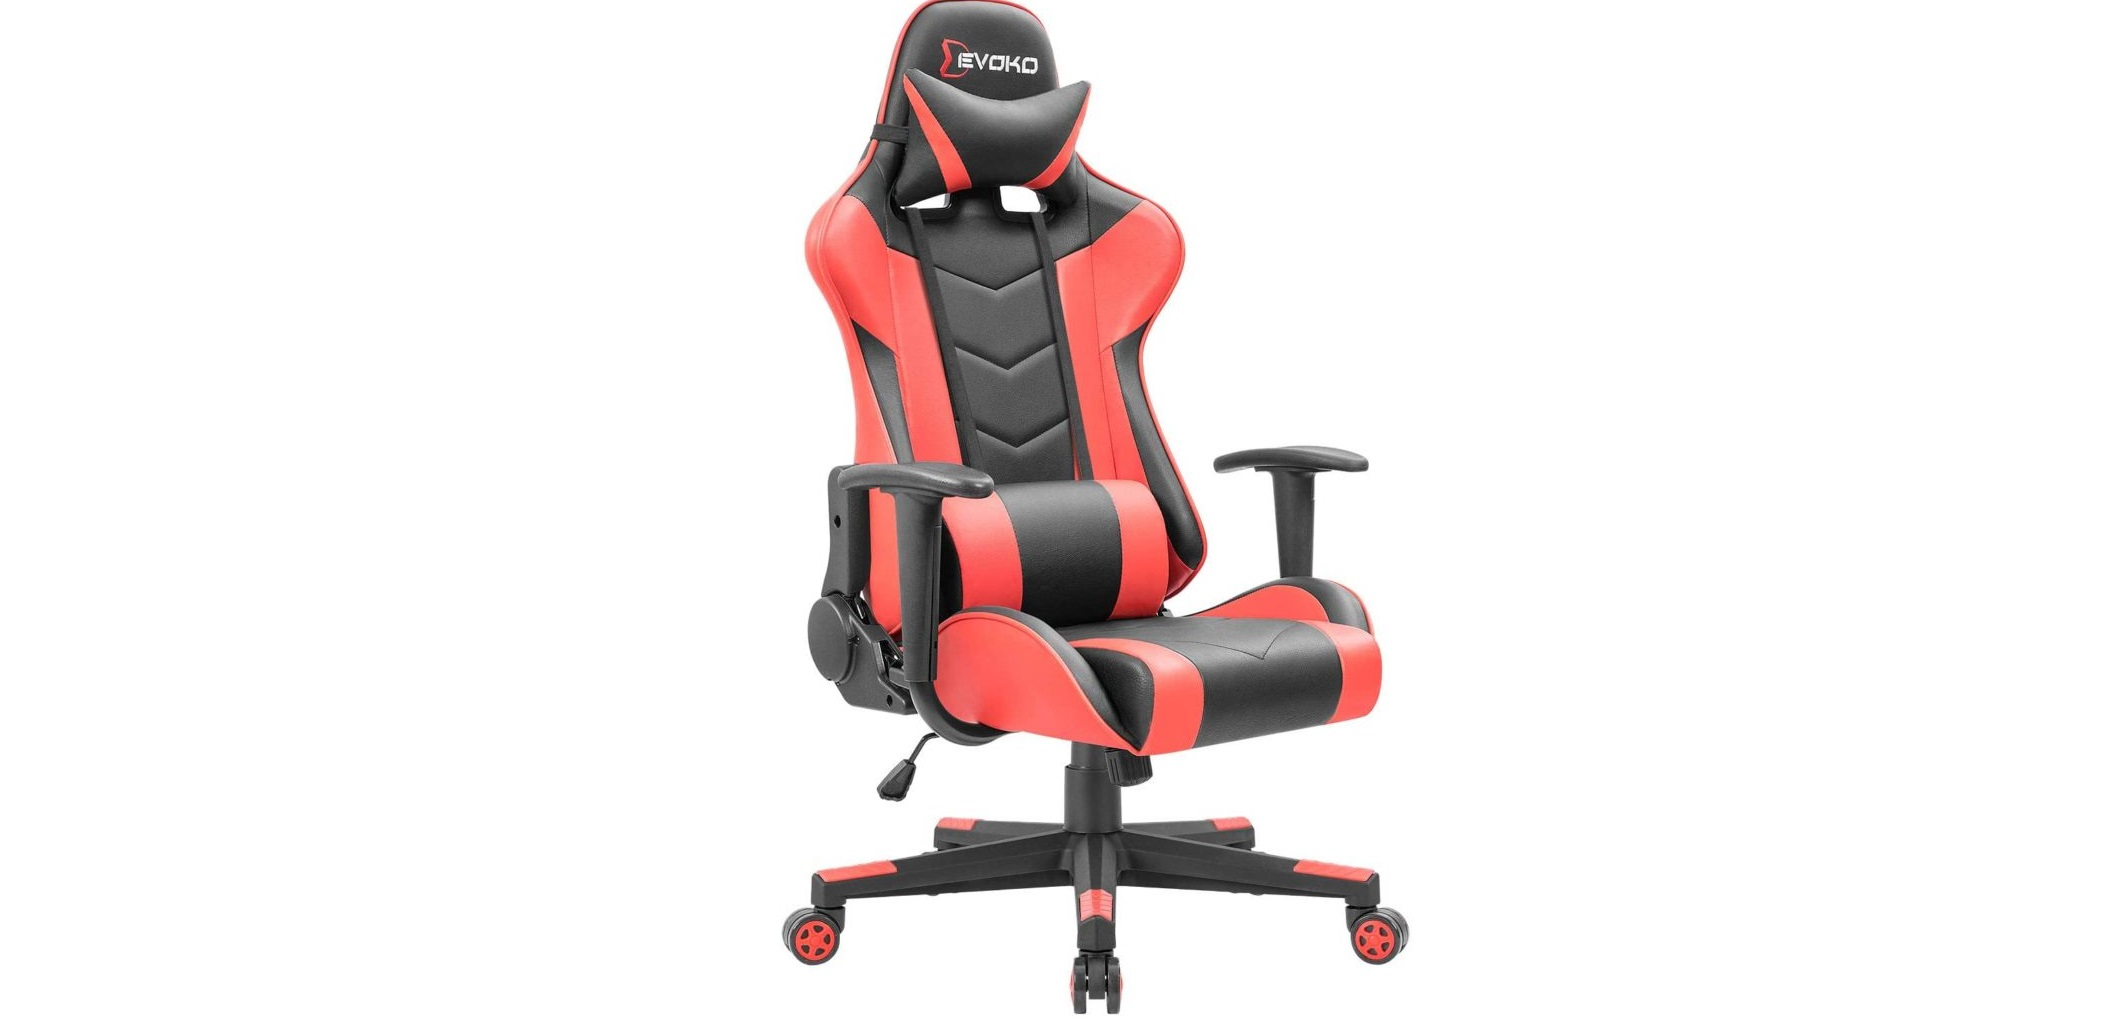 Top 5 best gaming chairs under $100